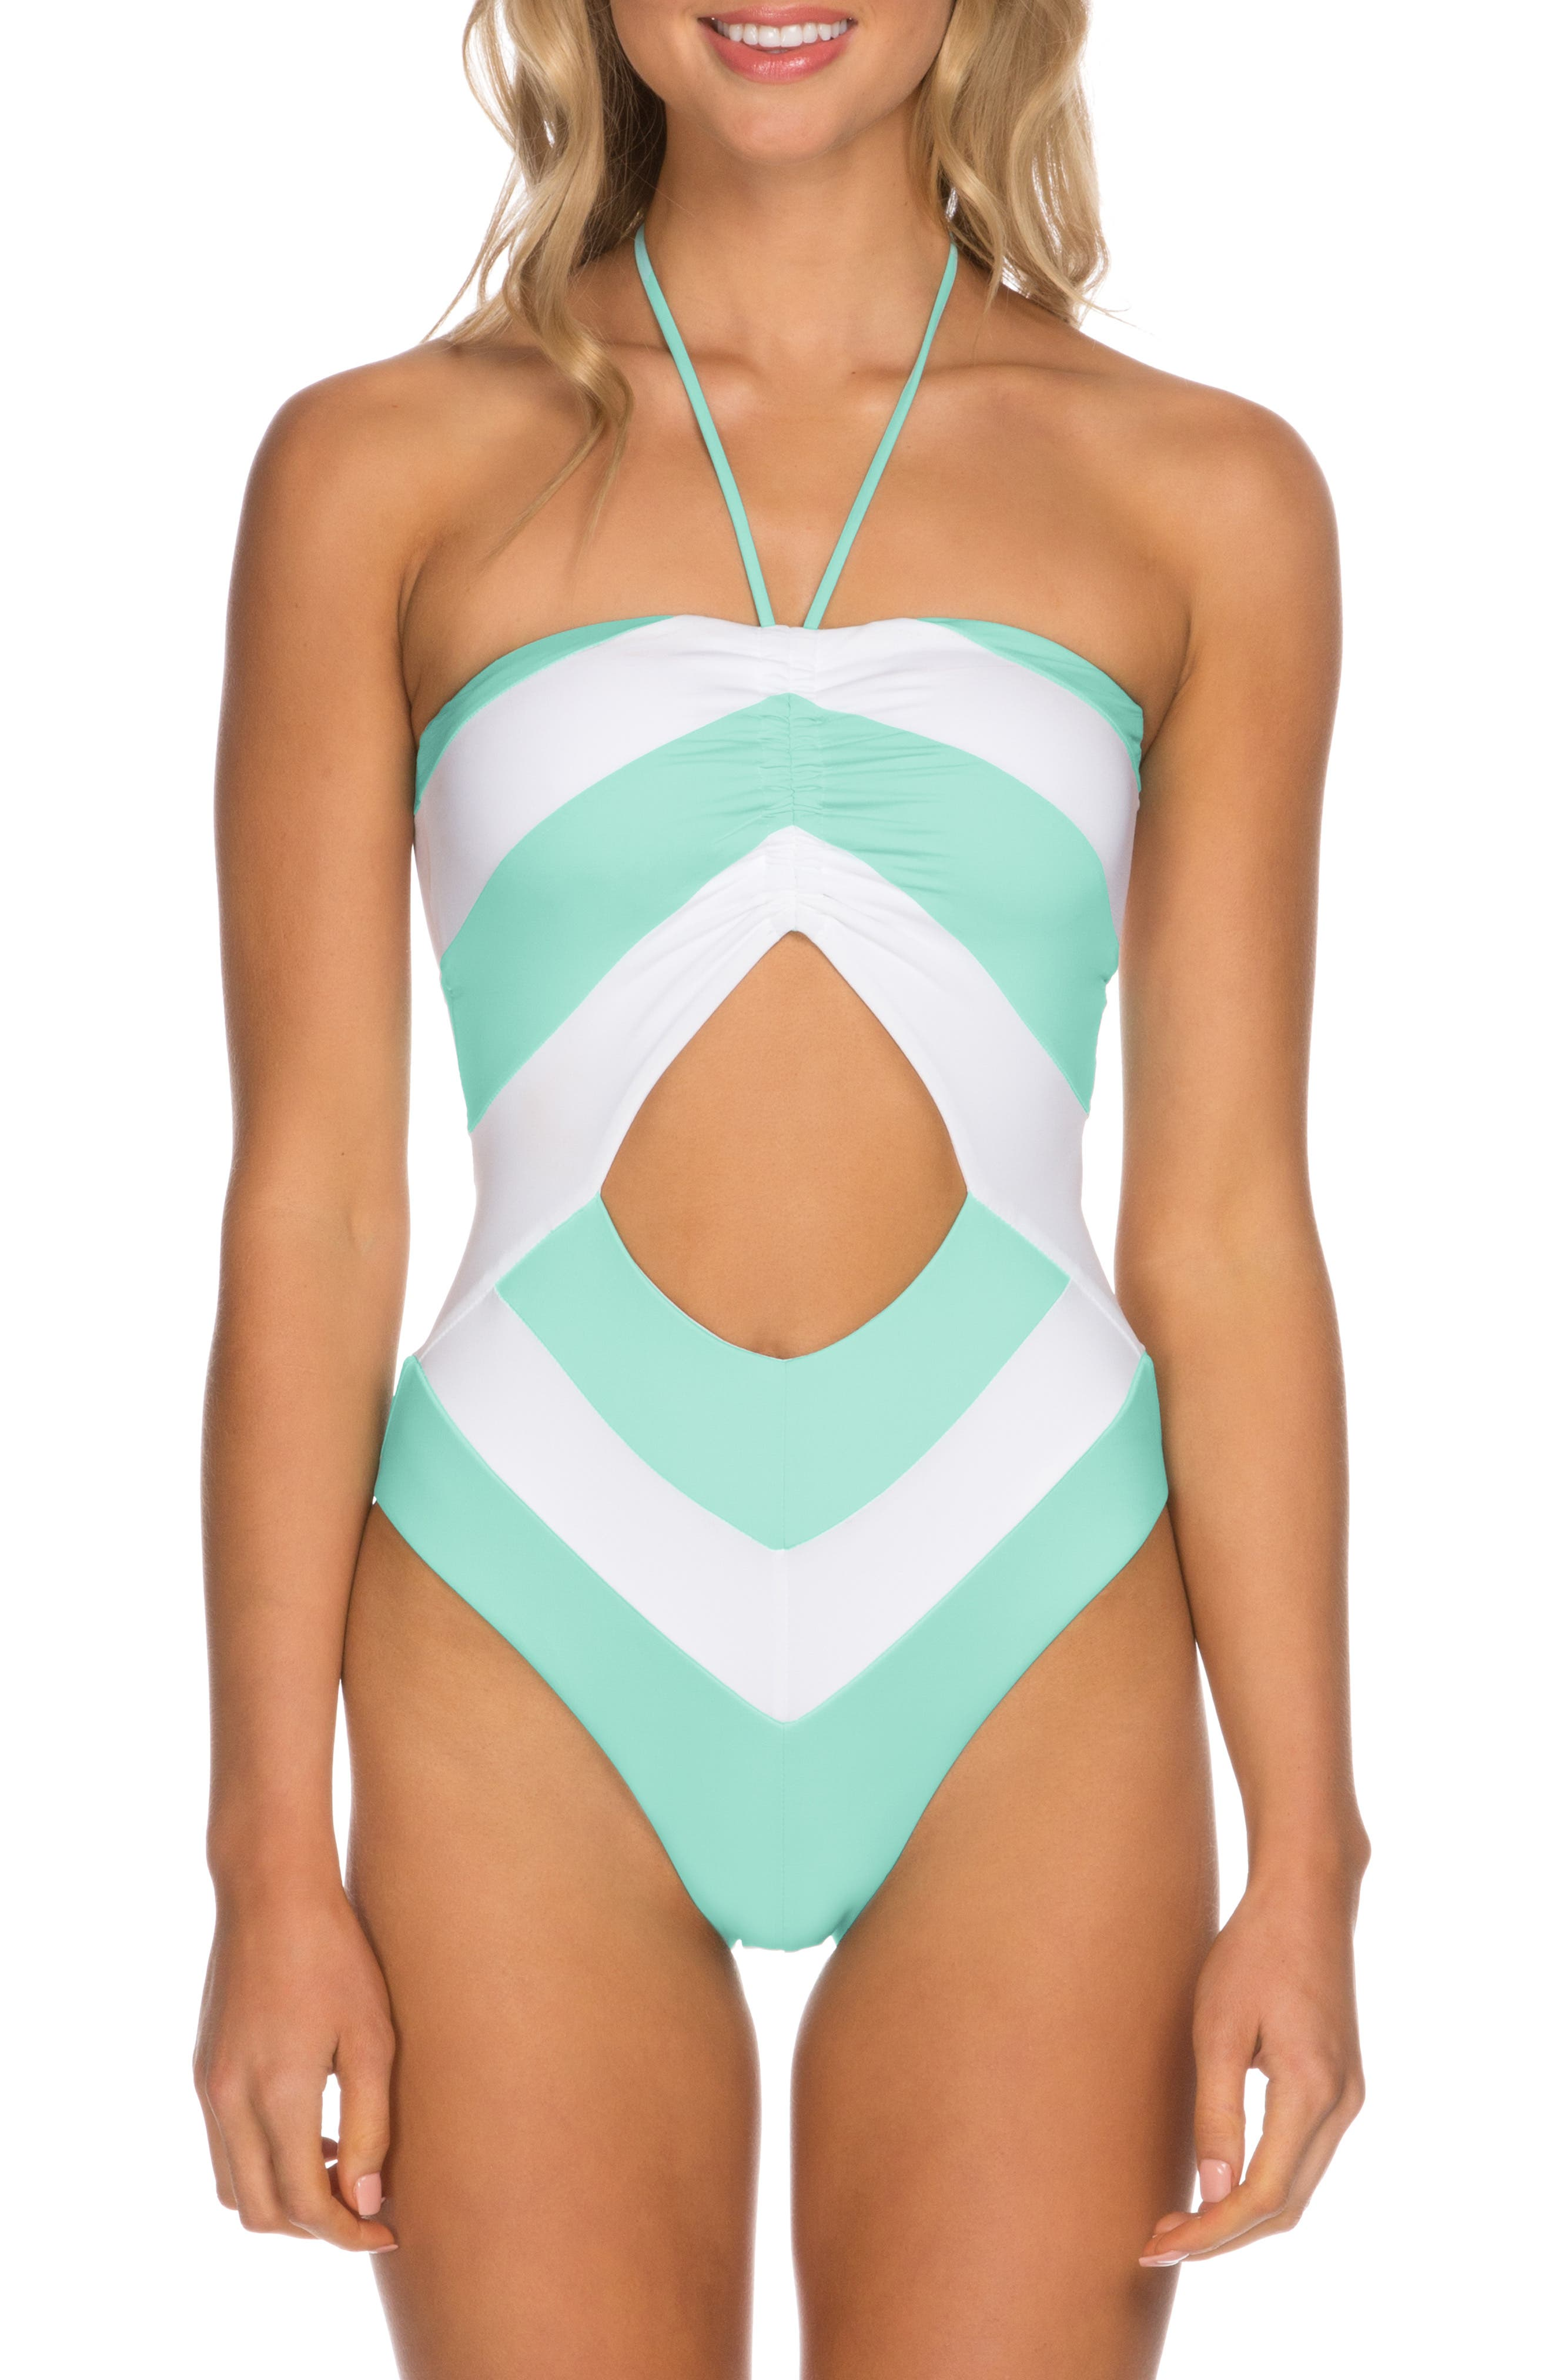 ISABELLA ROSE,                             Block Party One-Piece Swimsuit,                             Main thumbnail 1, color,                             BISCAYNE BLUE